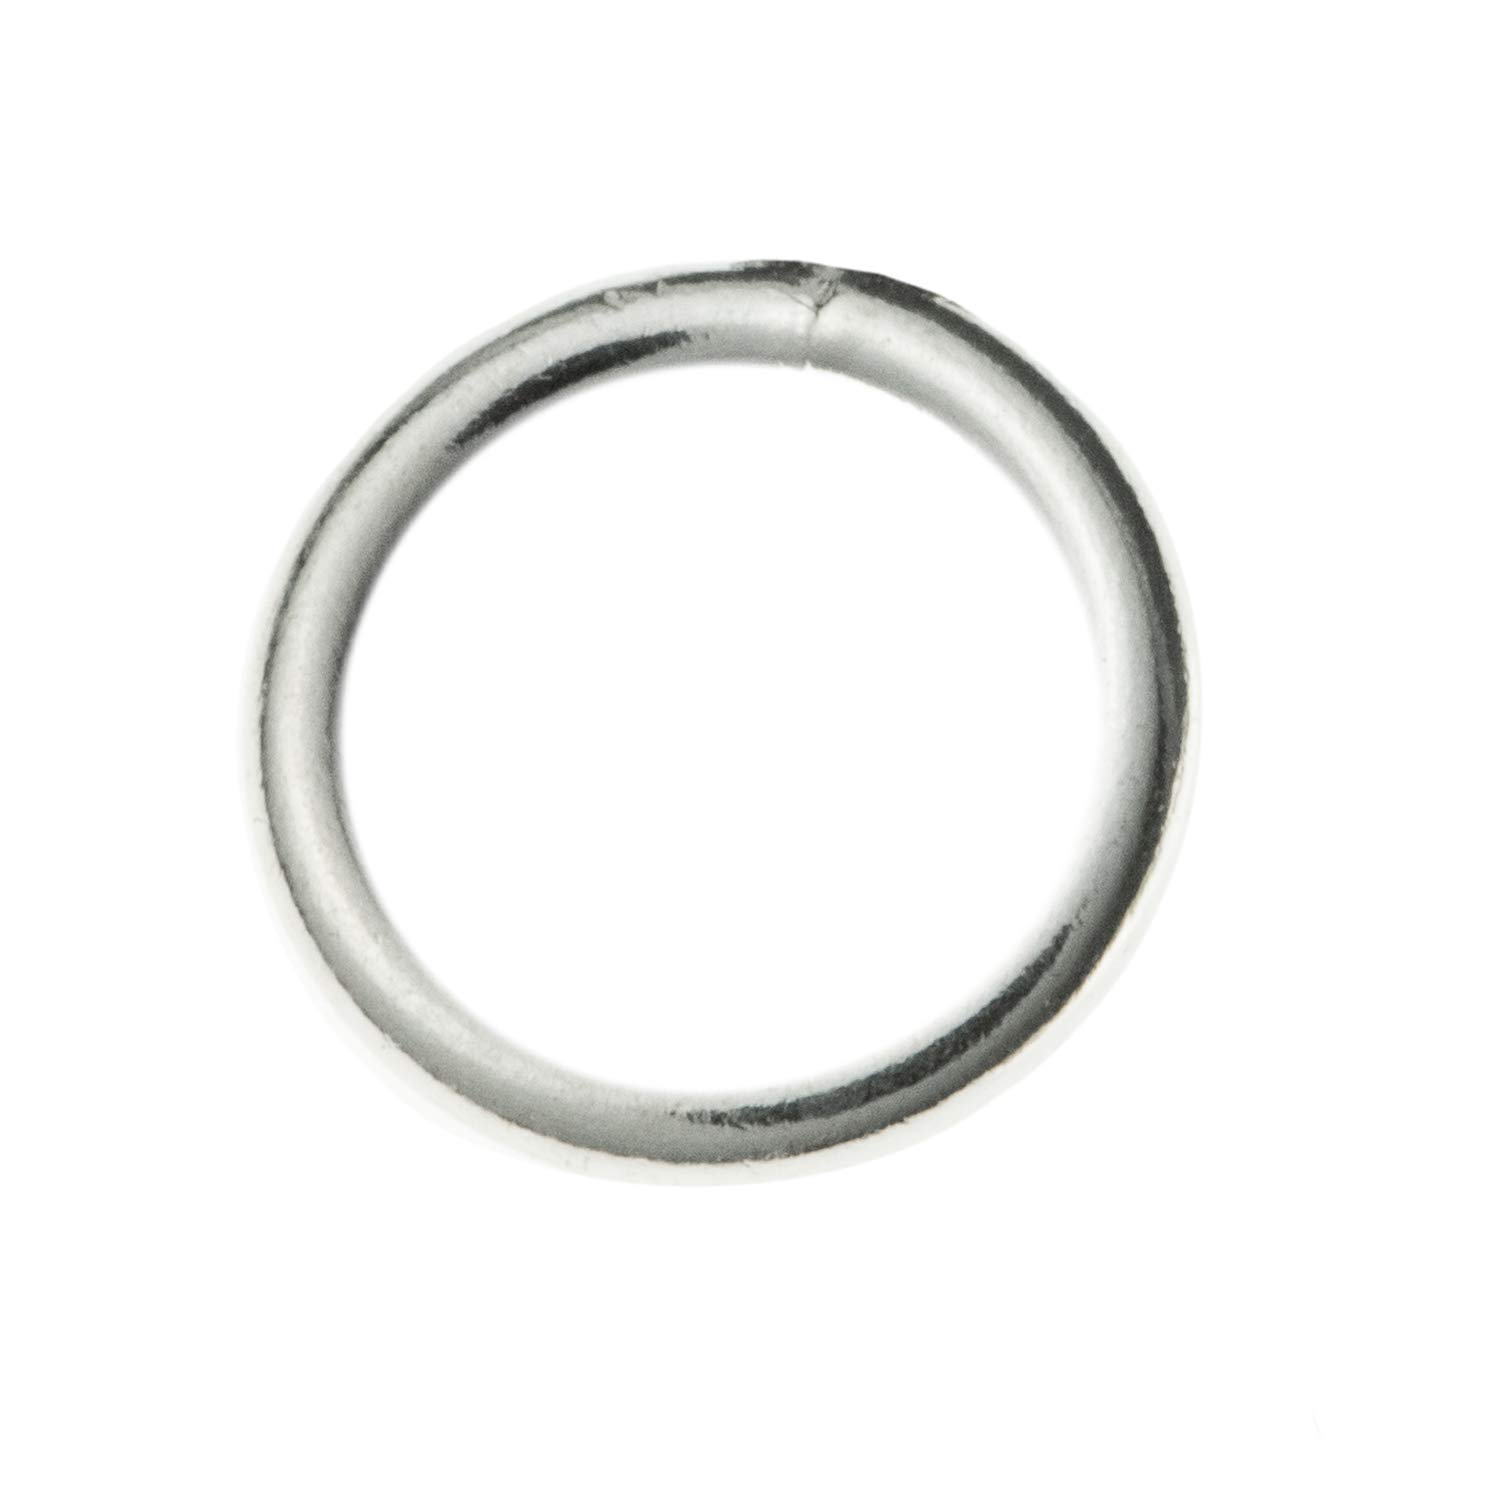 20pcs 925 Sterling Silver Closed Jump Rings Jewelry Findings 6mm